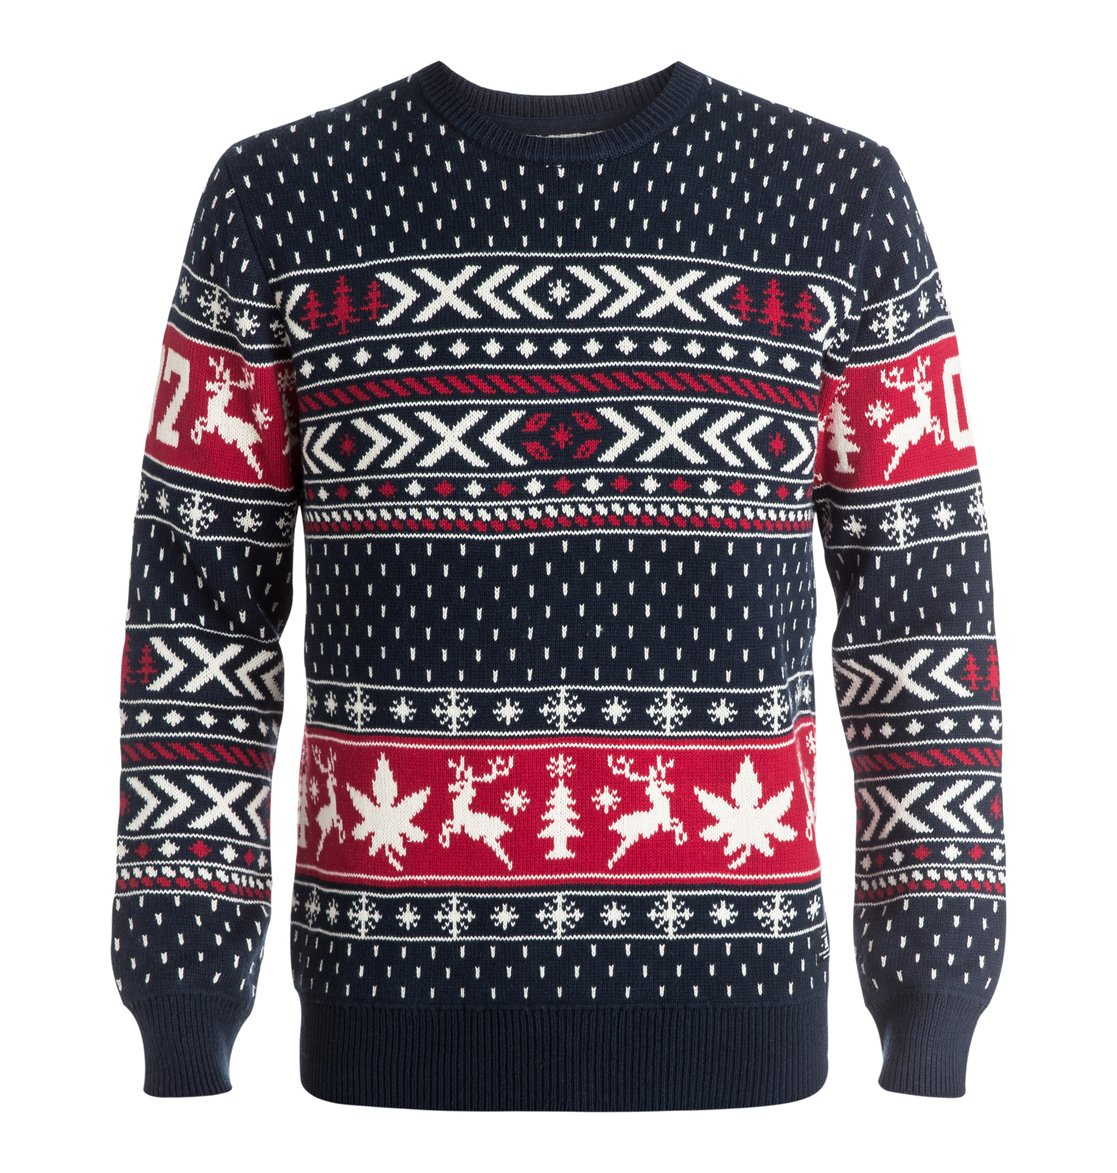 Dc Christmas Sweater.Men S Ugly Xmas Crew Sweater Edysw03012 Dc Shoes